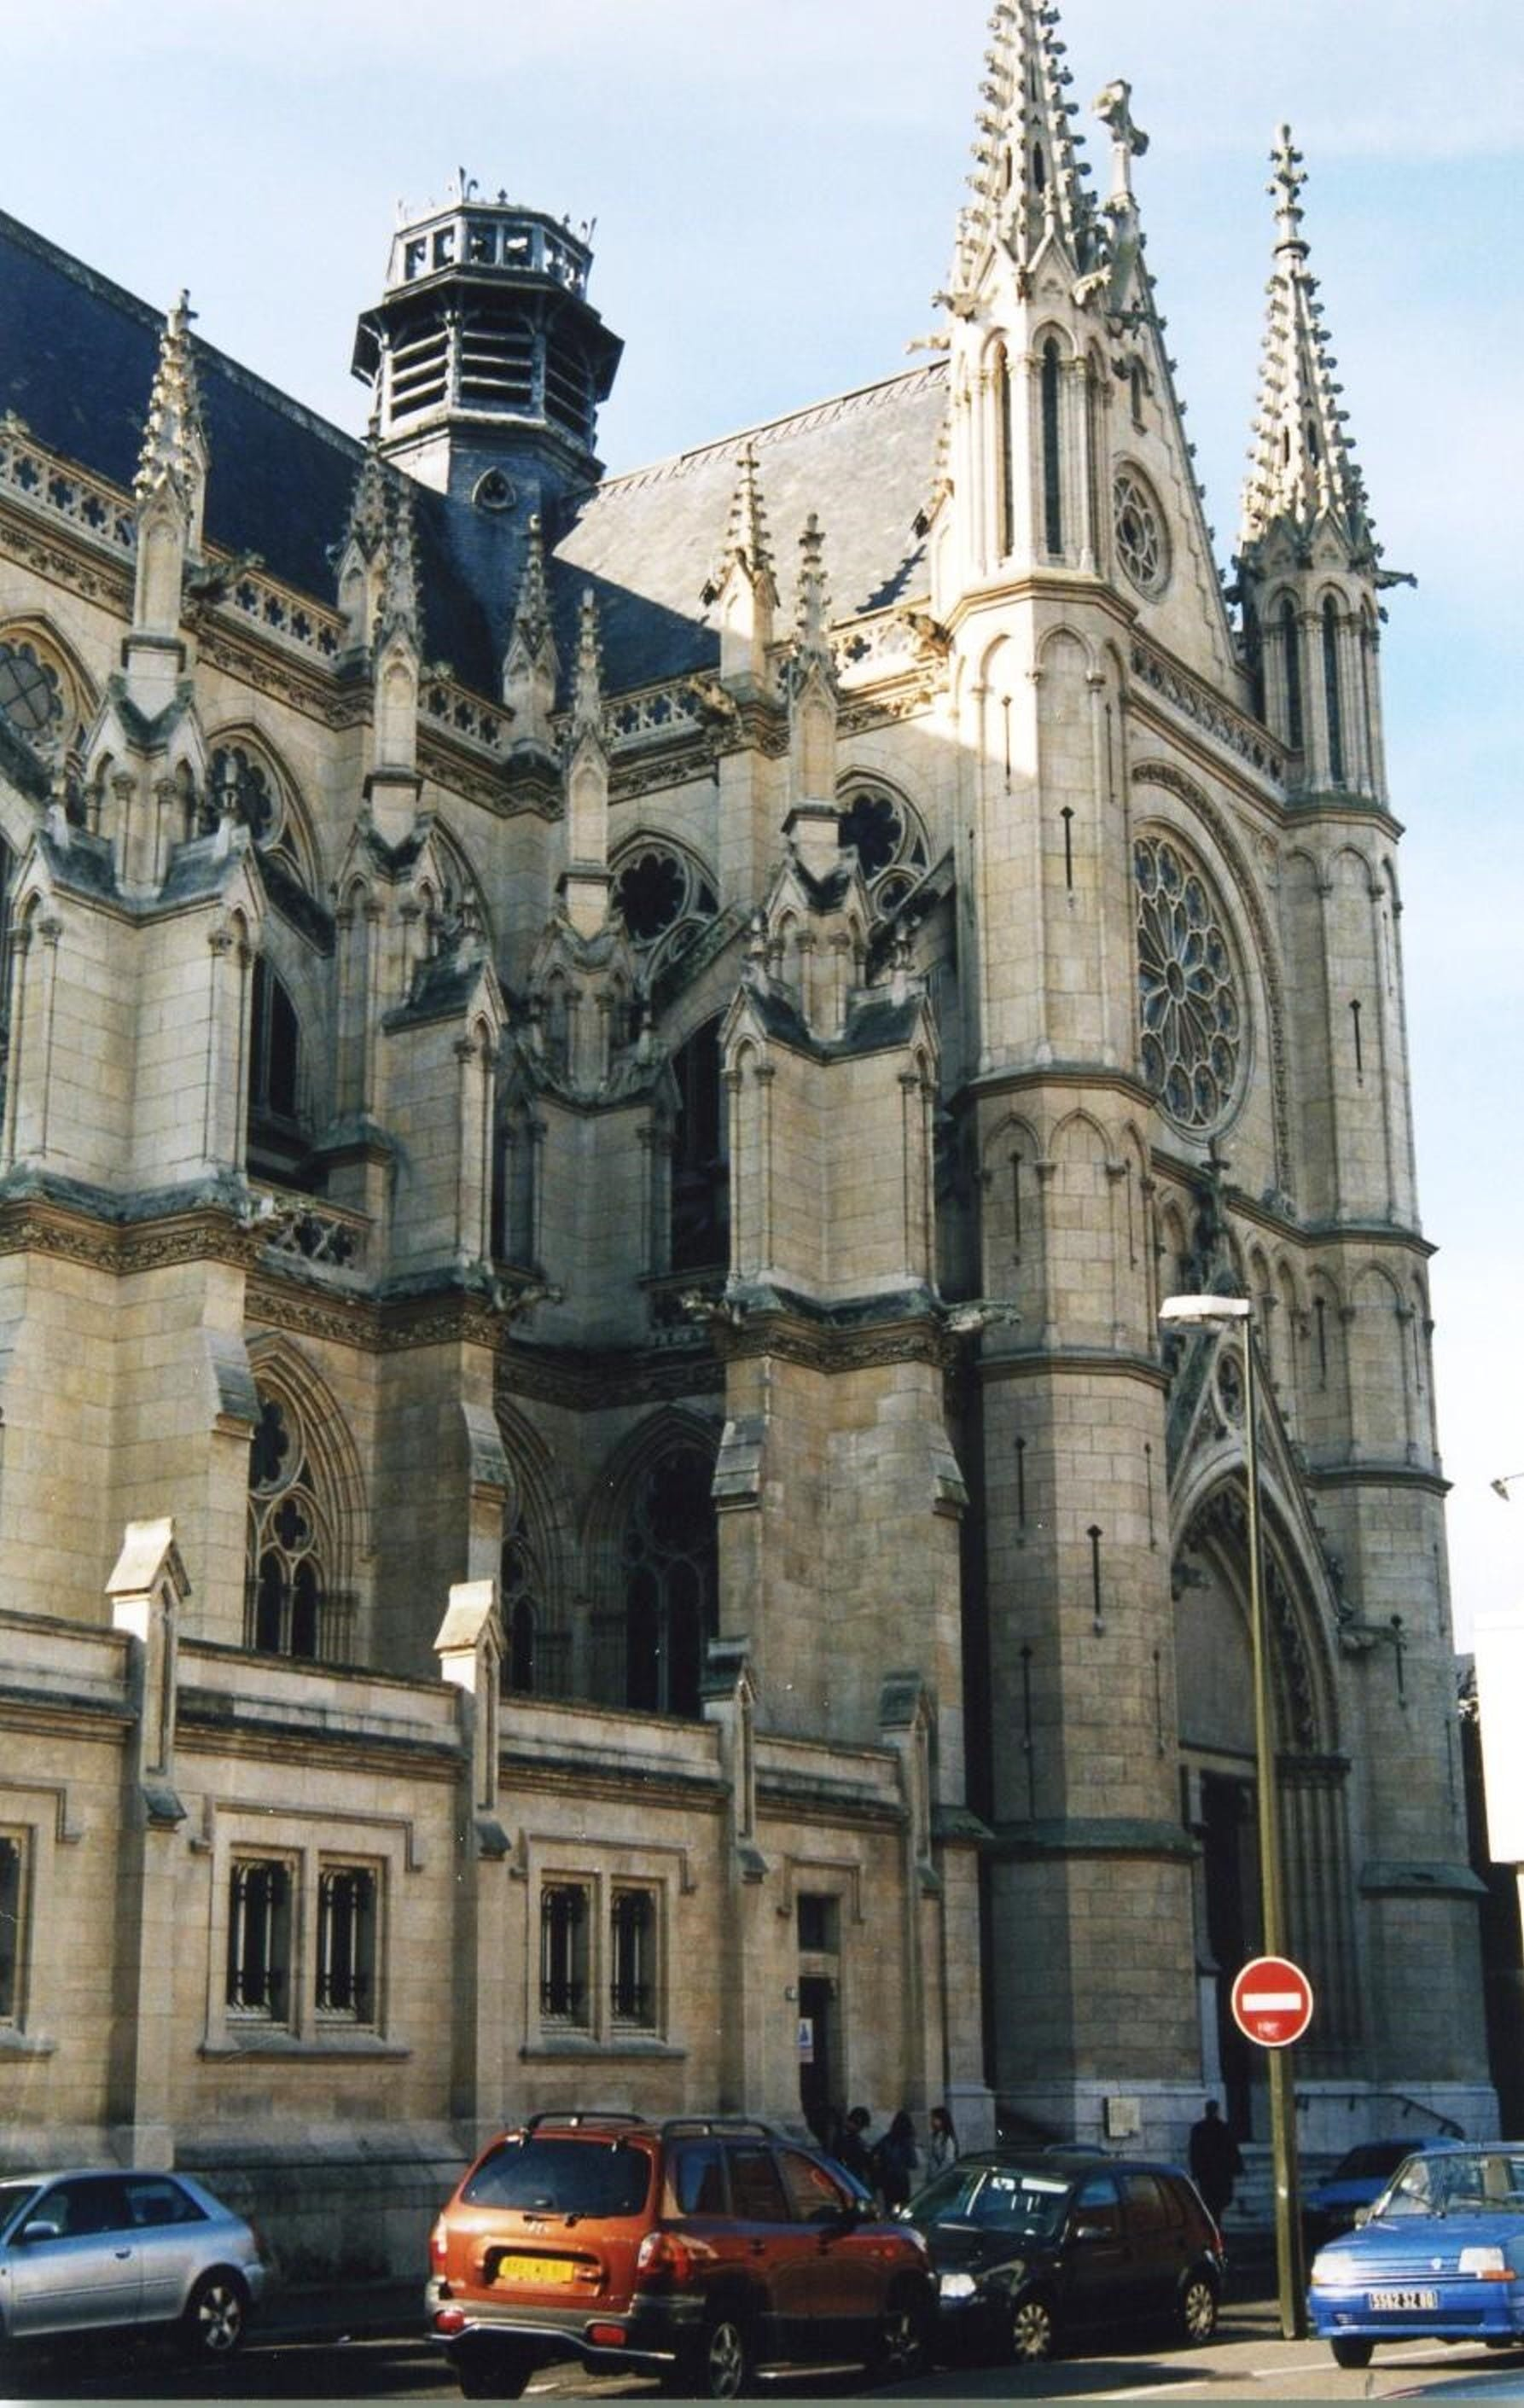 Amiens, Amiens Cathedral, france